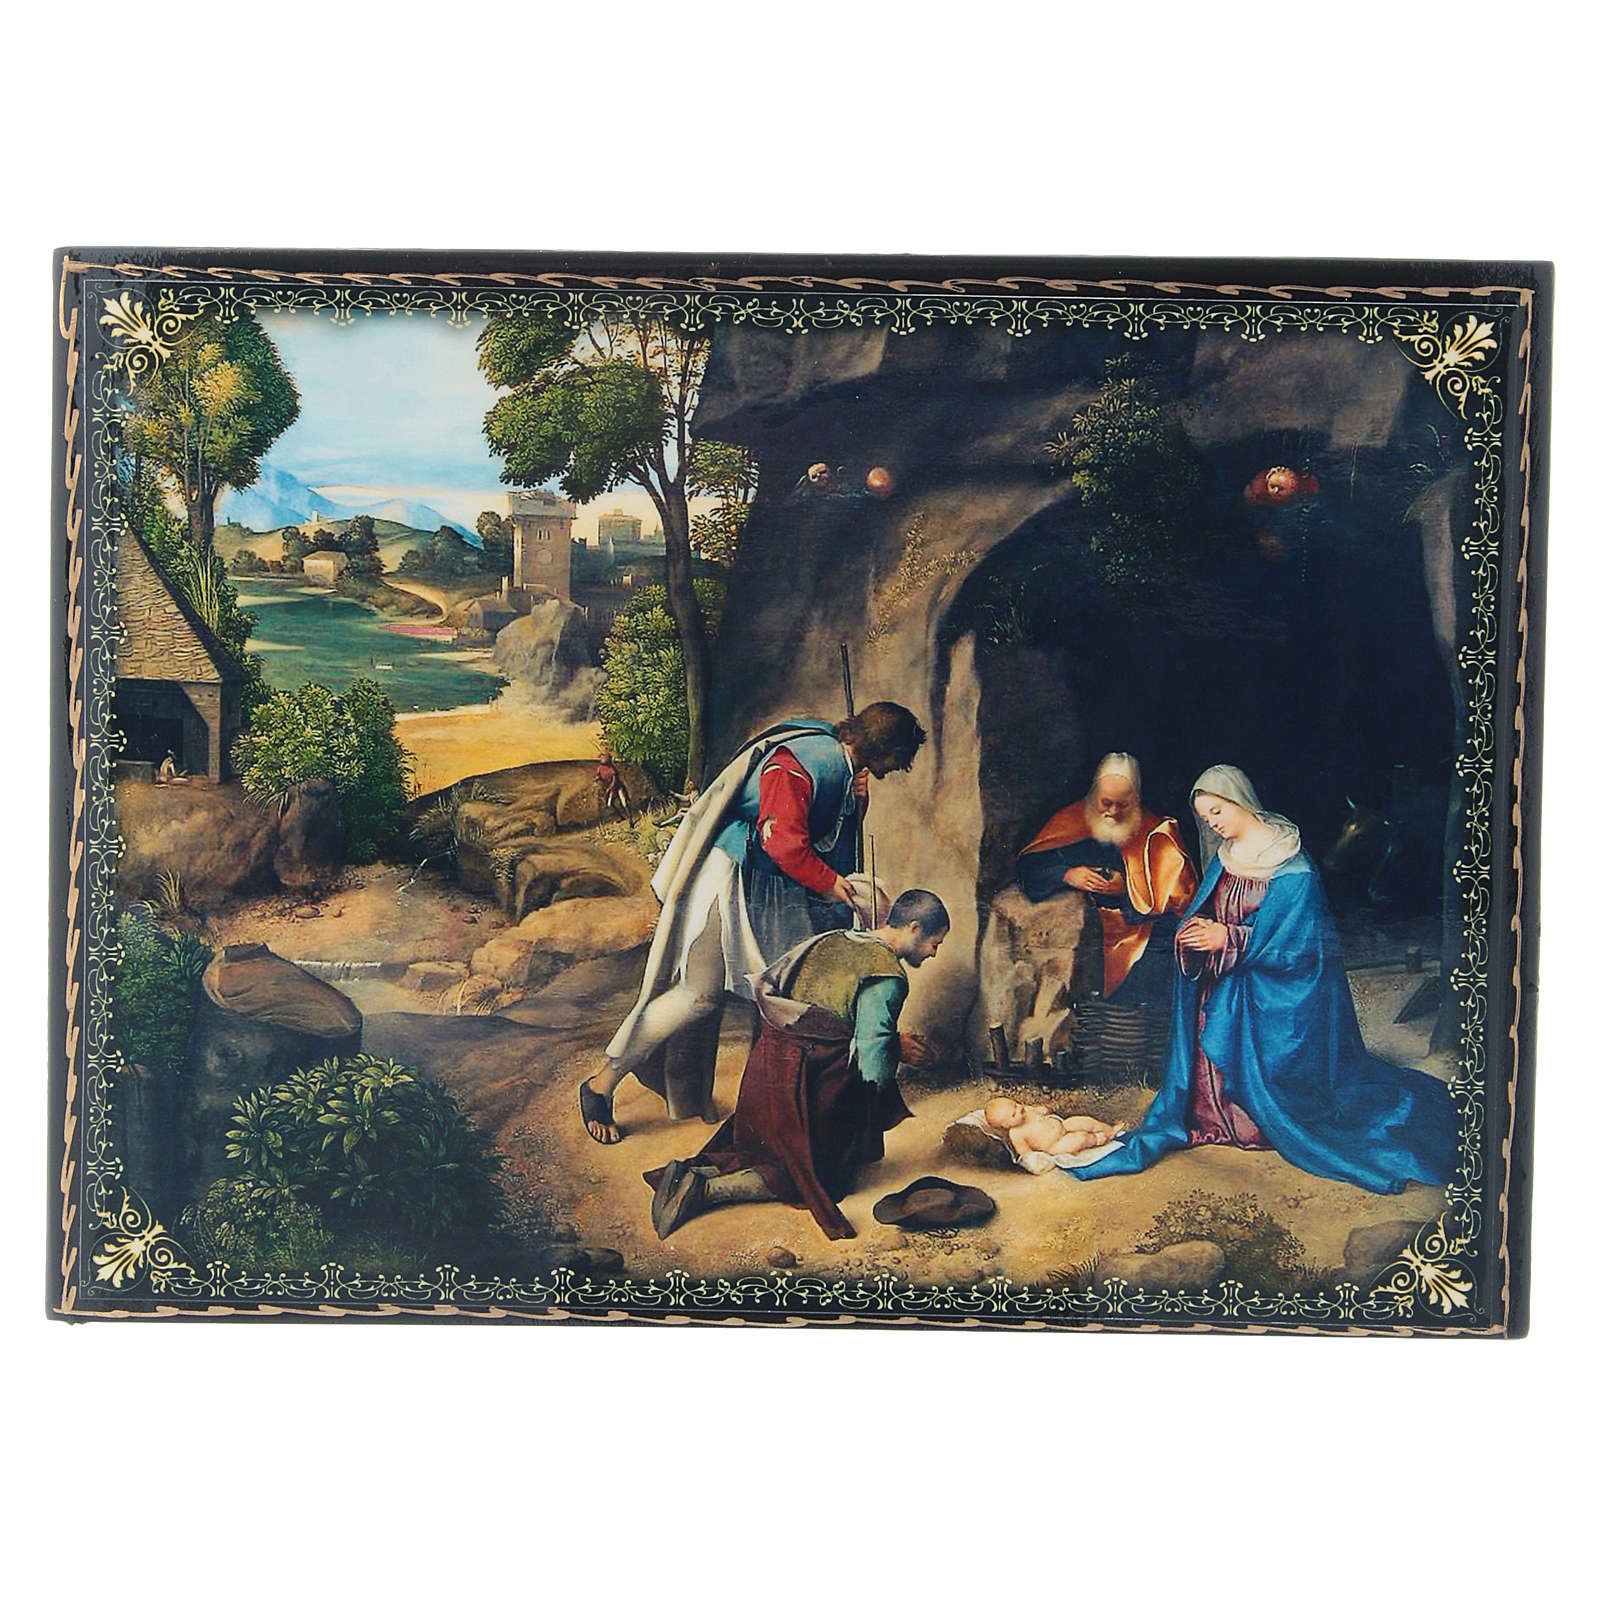 Russian decorated papier-machè box The Adoration of the Shepherds decoupage 22X16 cm 4